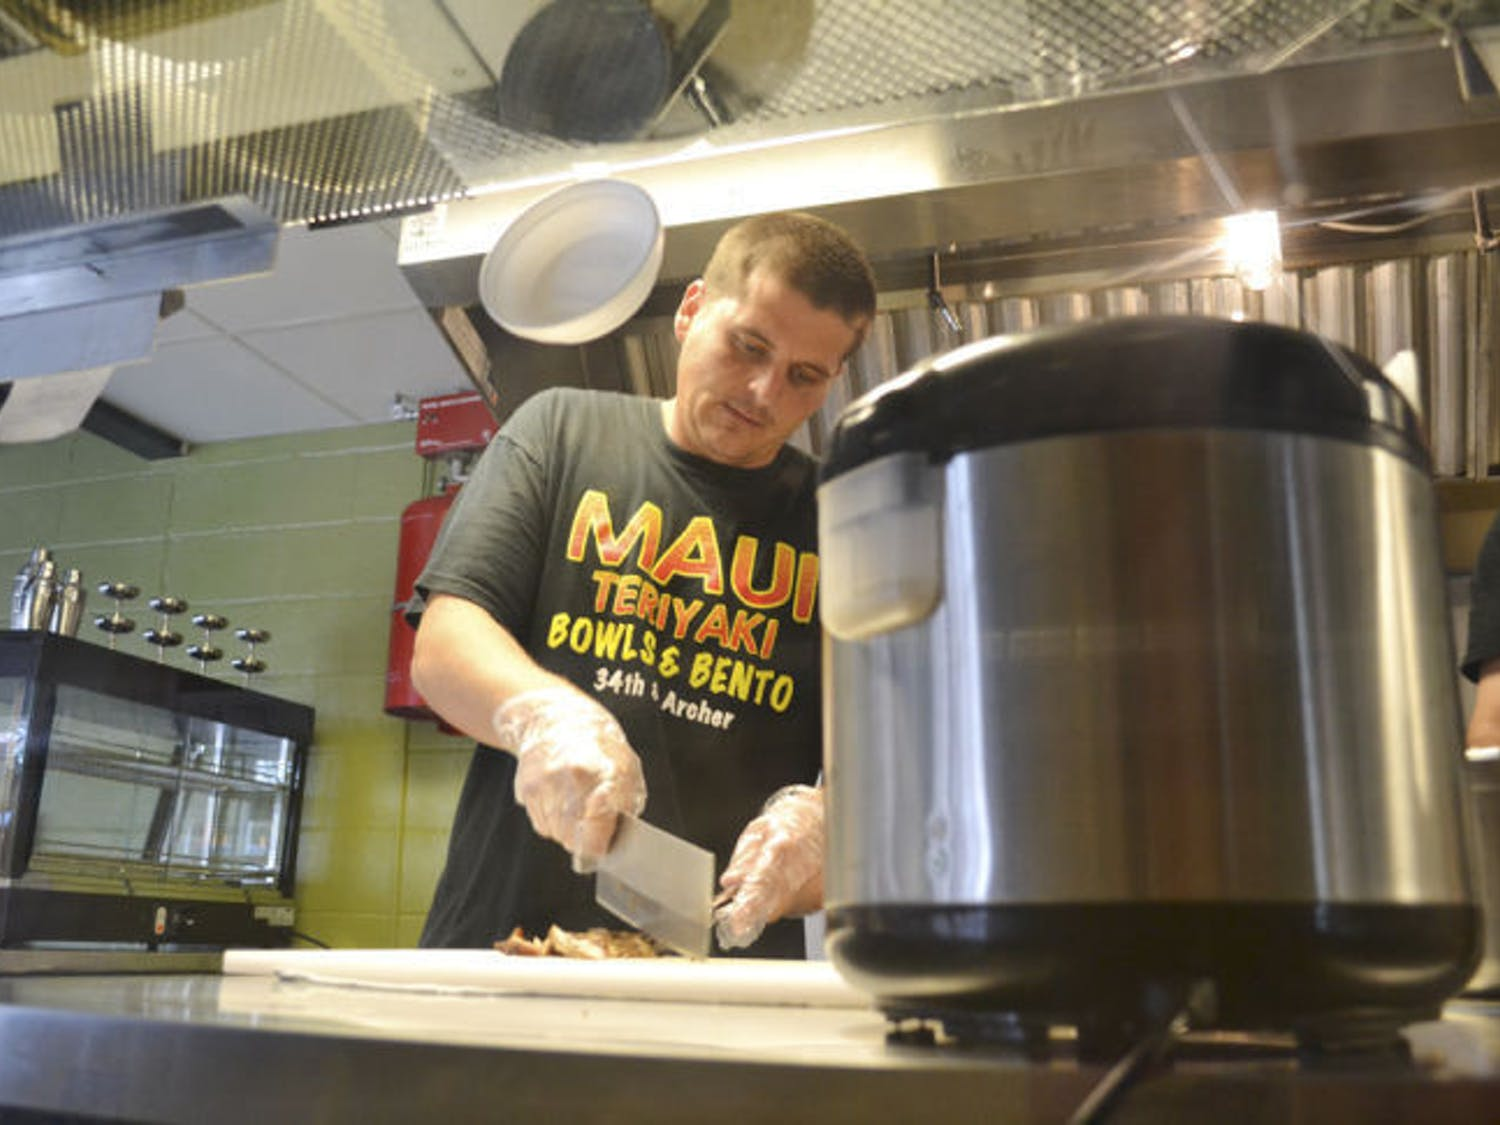 Gainesville native and Maui Grill manager Justin Amerson, 29, makes the Classic Chicken Bowl on Wednesday evening. The new restaurant opened April 21, replacing Corner - Latin Confusion.